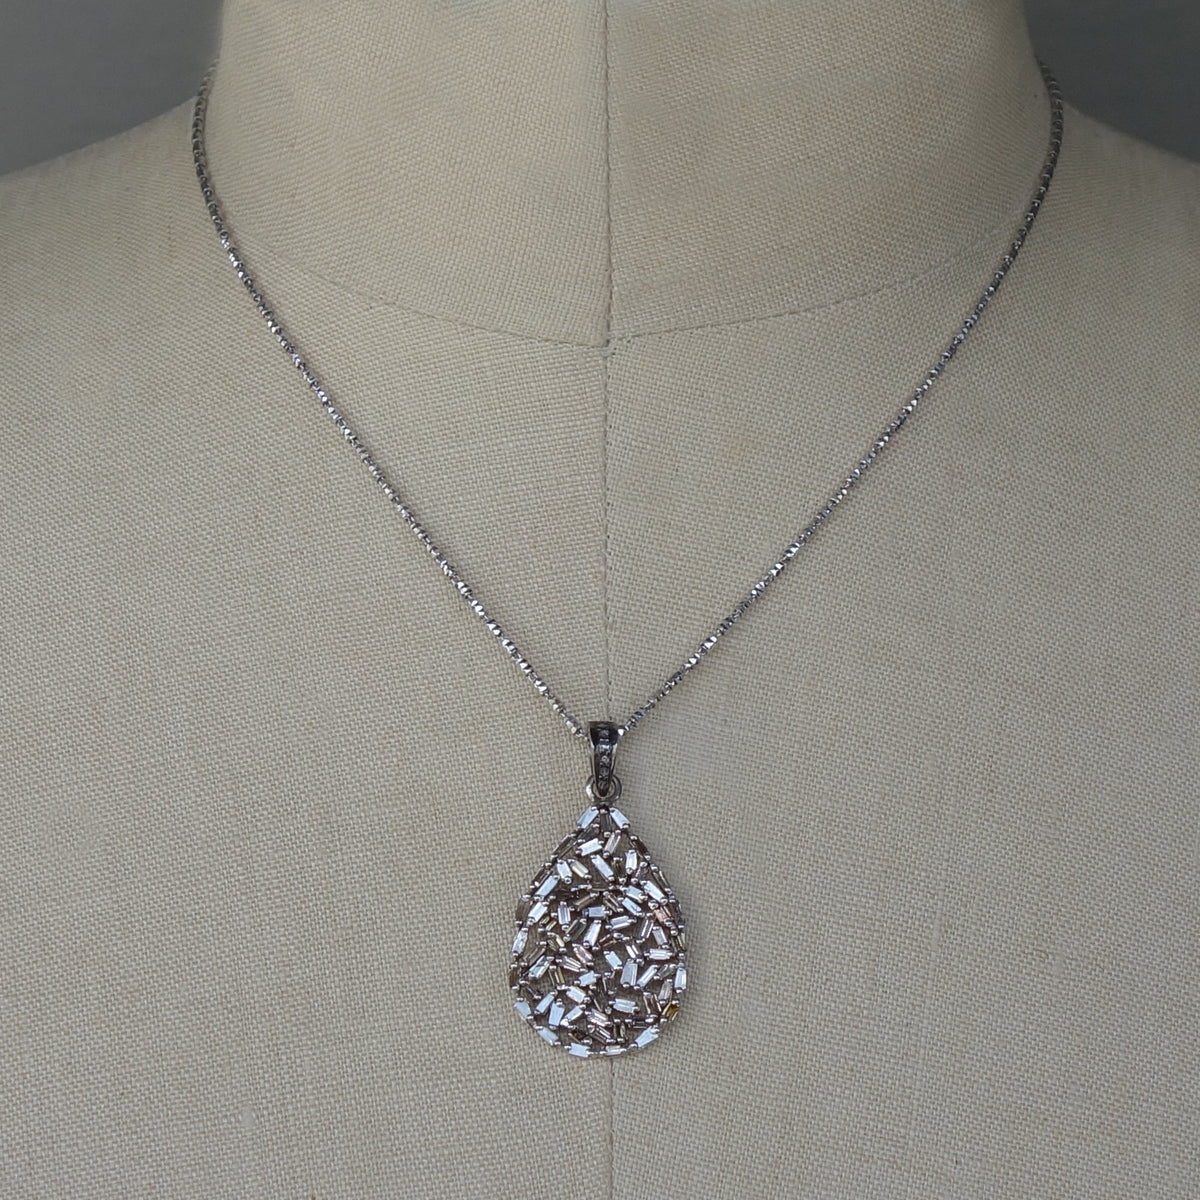 I'm Falling for You Teardrop Diamond necklace